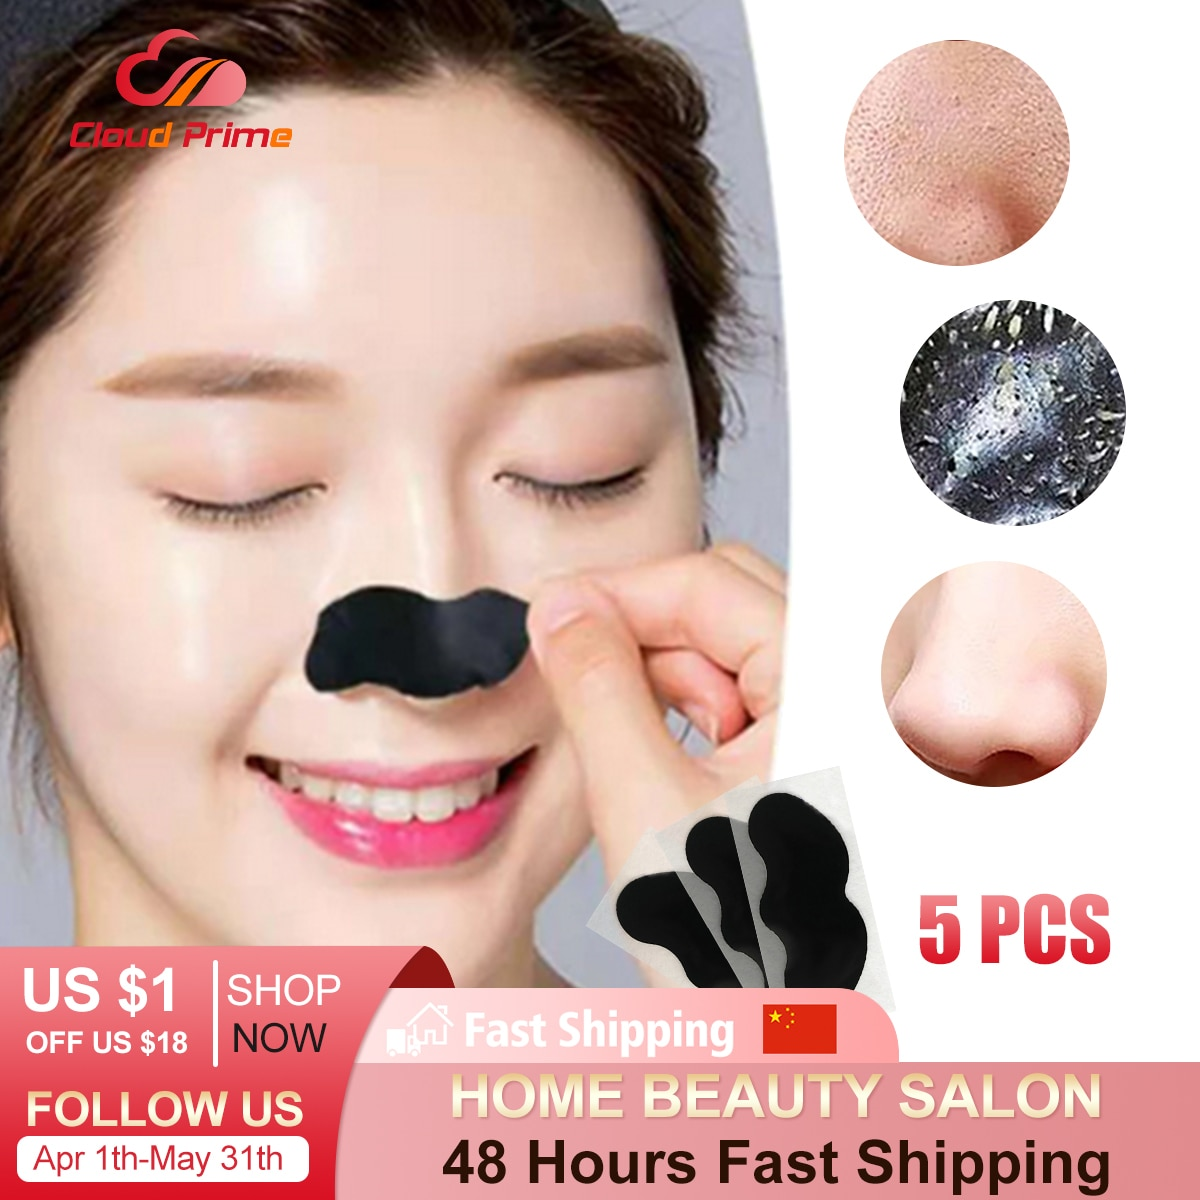 dead sea mud mask deep cleaning black mask hydrating acne blemish clearing lightening moisturizer nourishing pore face cleaner 5Pcs Nose Blackhead Remover Strip Acne Treatment Mask Nose Sticker From Black Dots Cleaner Nose Pore Deep Cleaning Skin Care Set